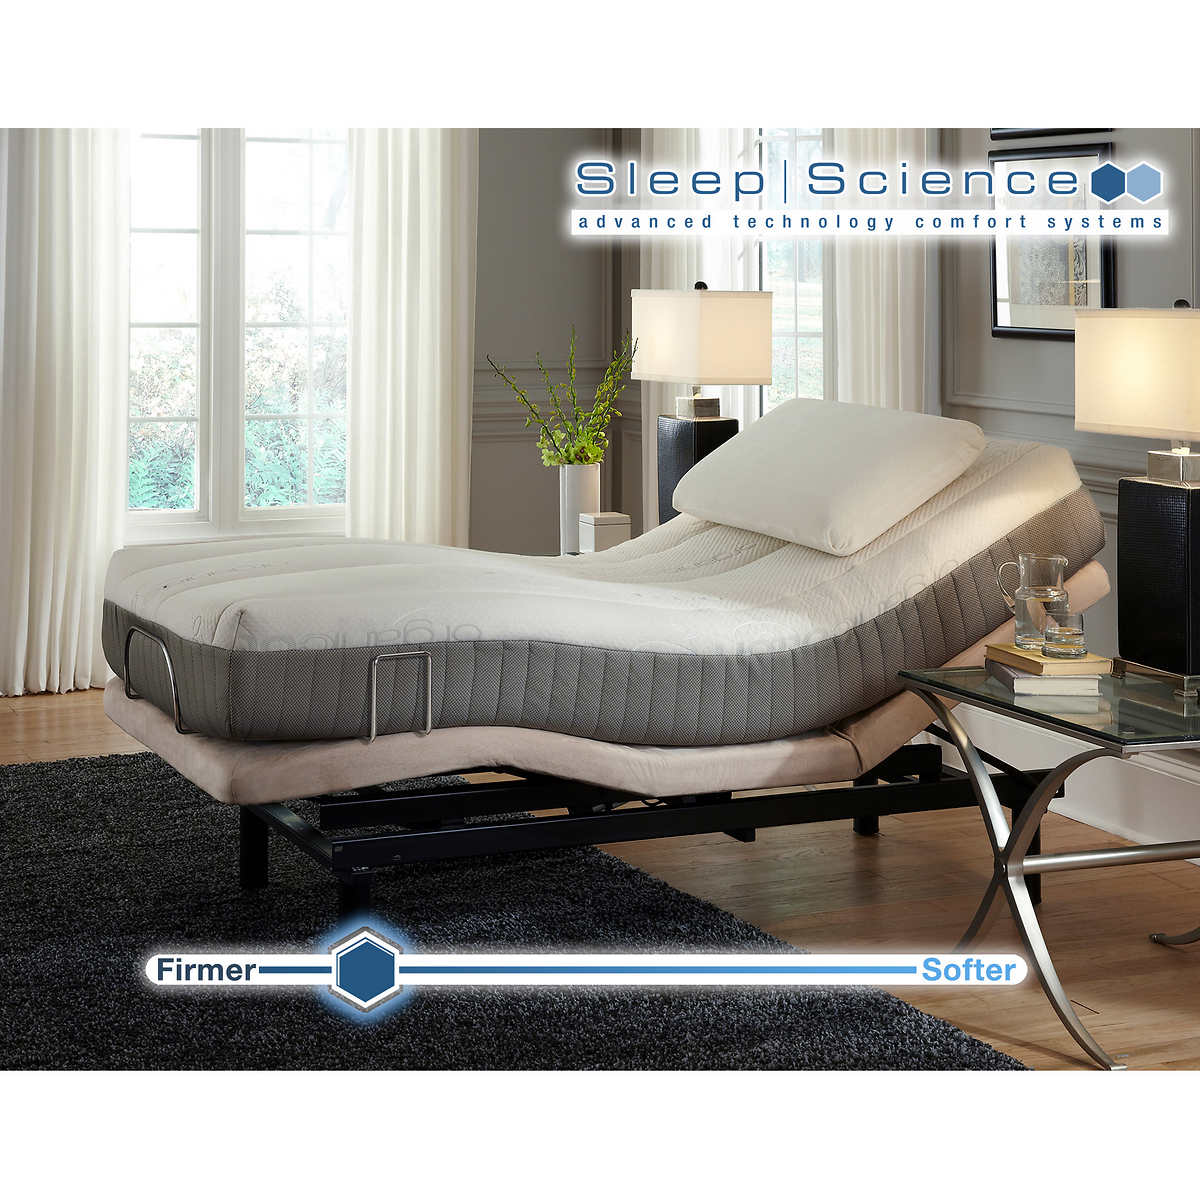 Twin size sleep number bed prices - Sleep Science 9 Natural Latex Twin Xl Mattress With Adjustable Power Base Meduim